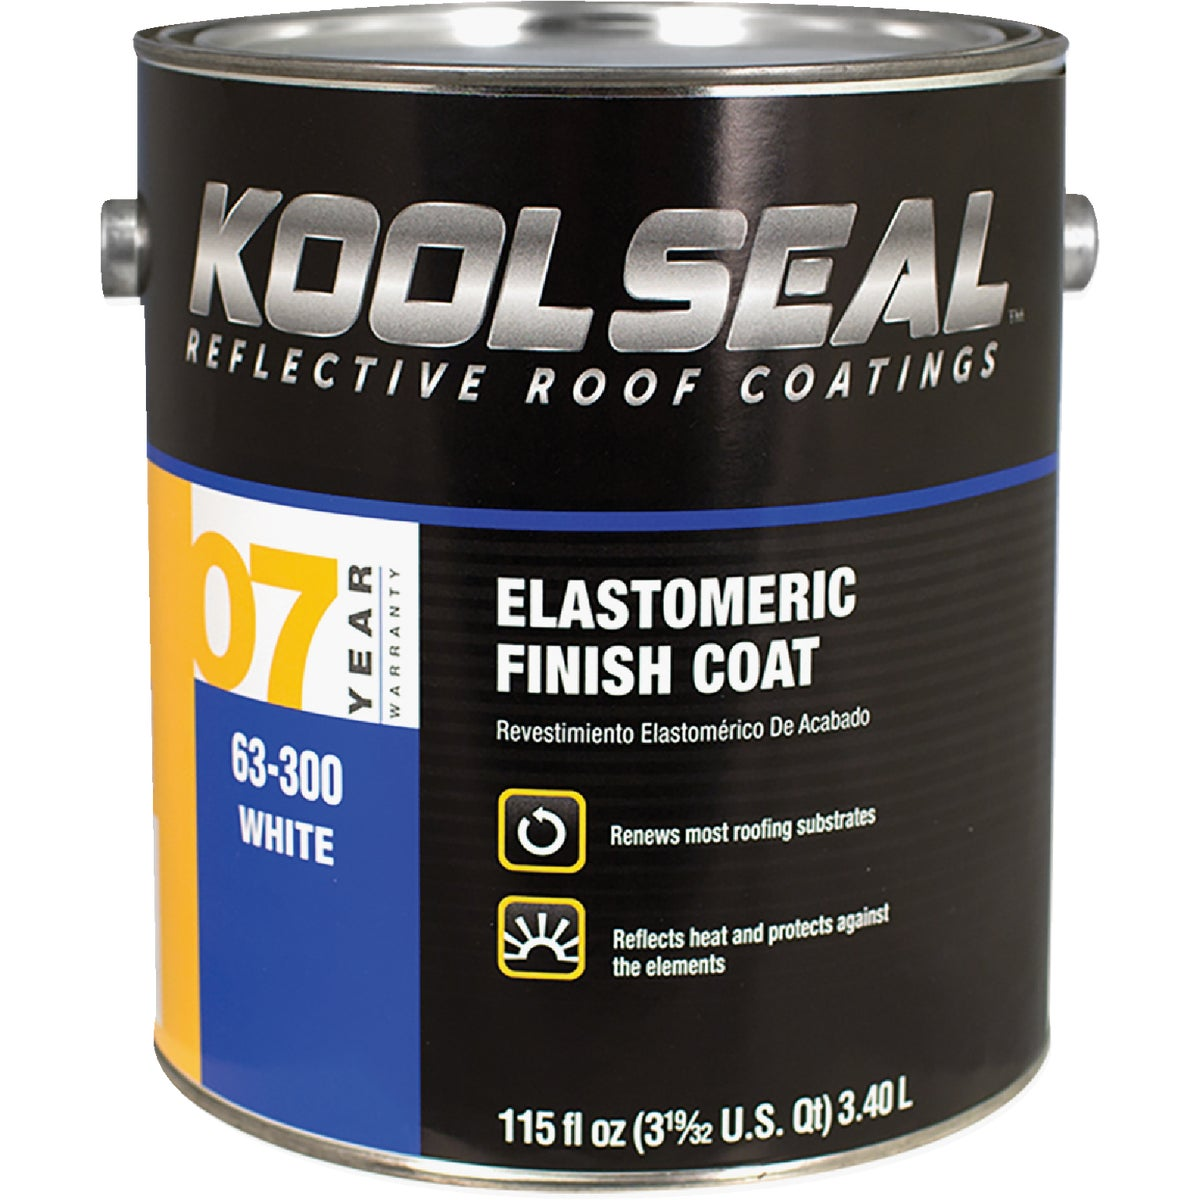 7Y WHT ELASTO RF COATING - KS0063300-16 by Kool Seal